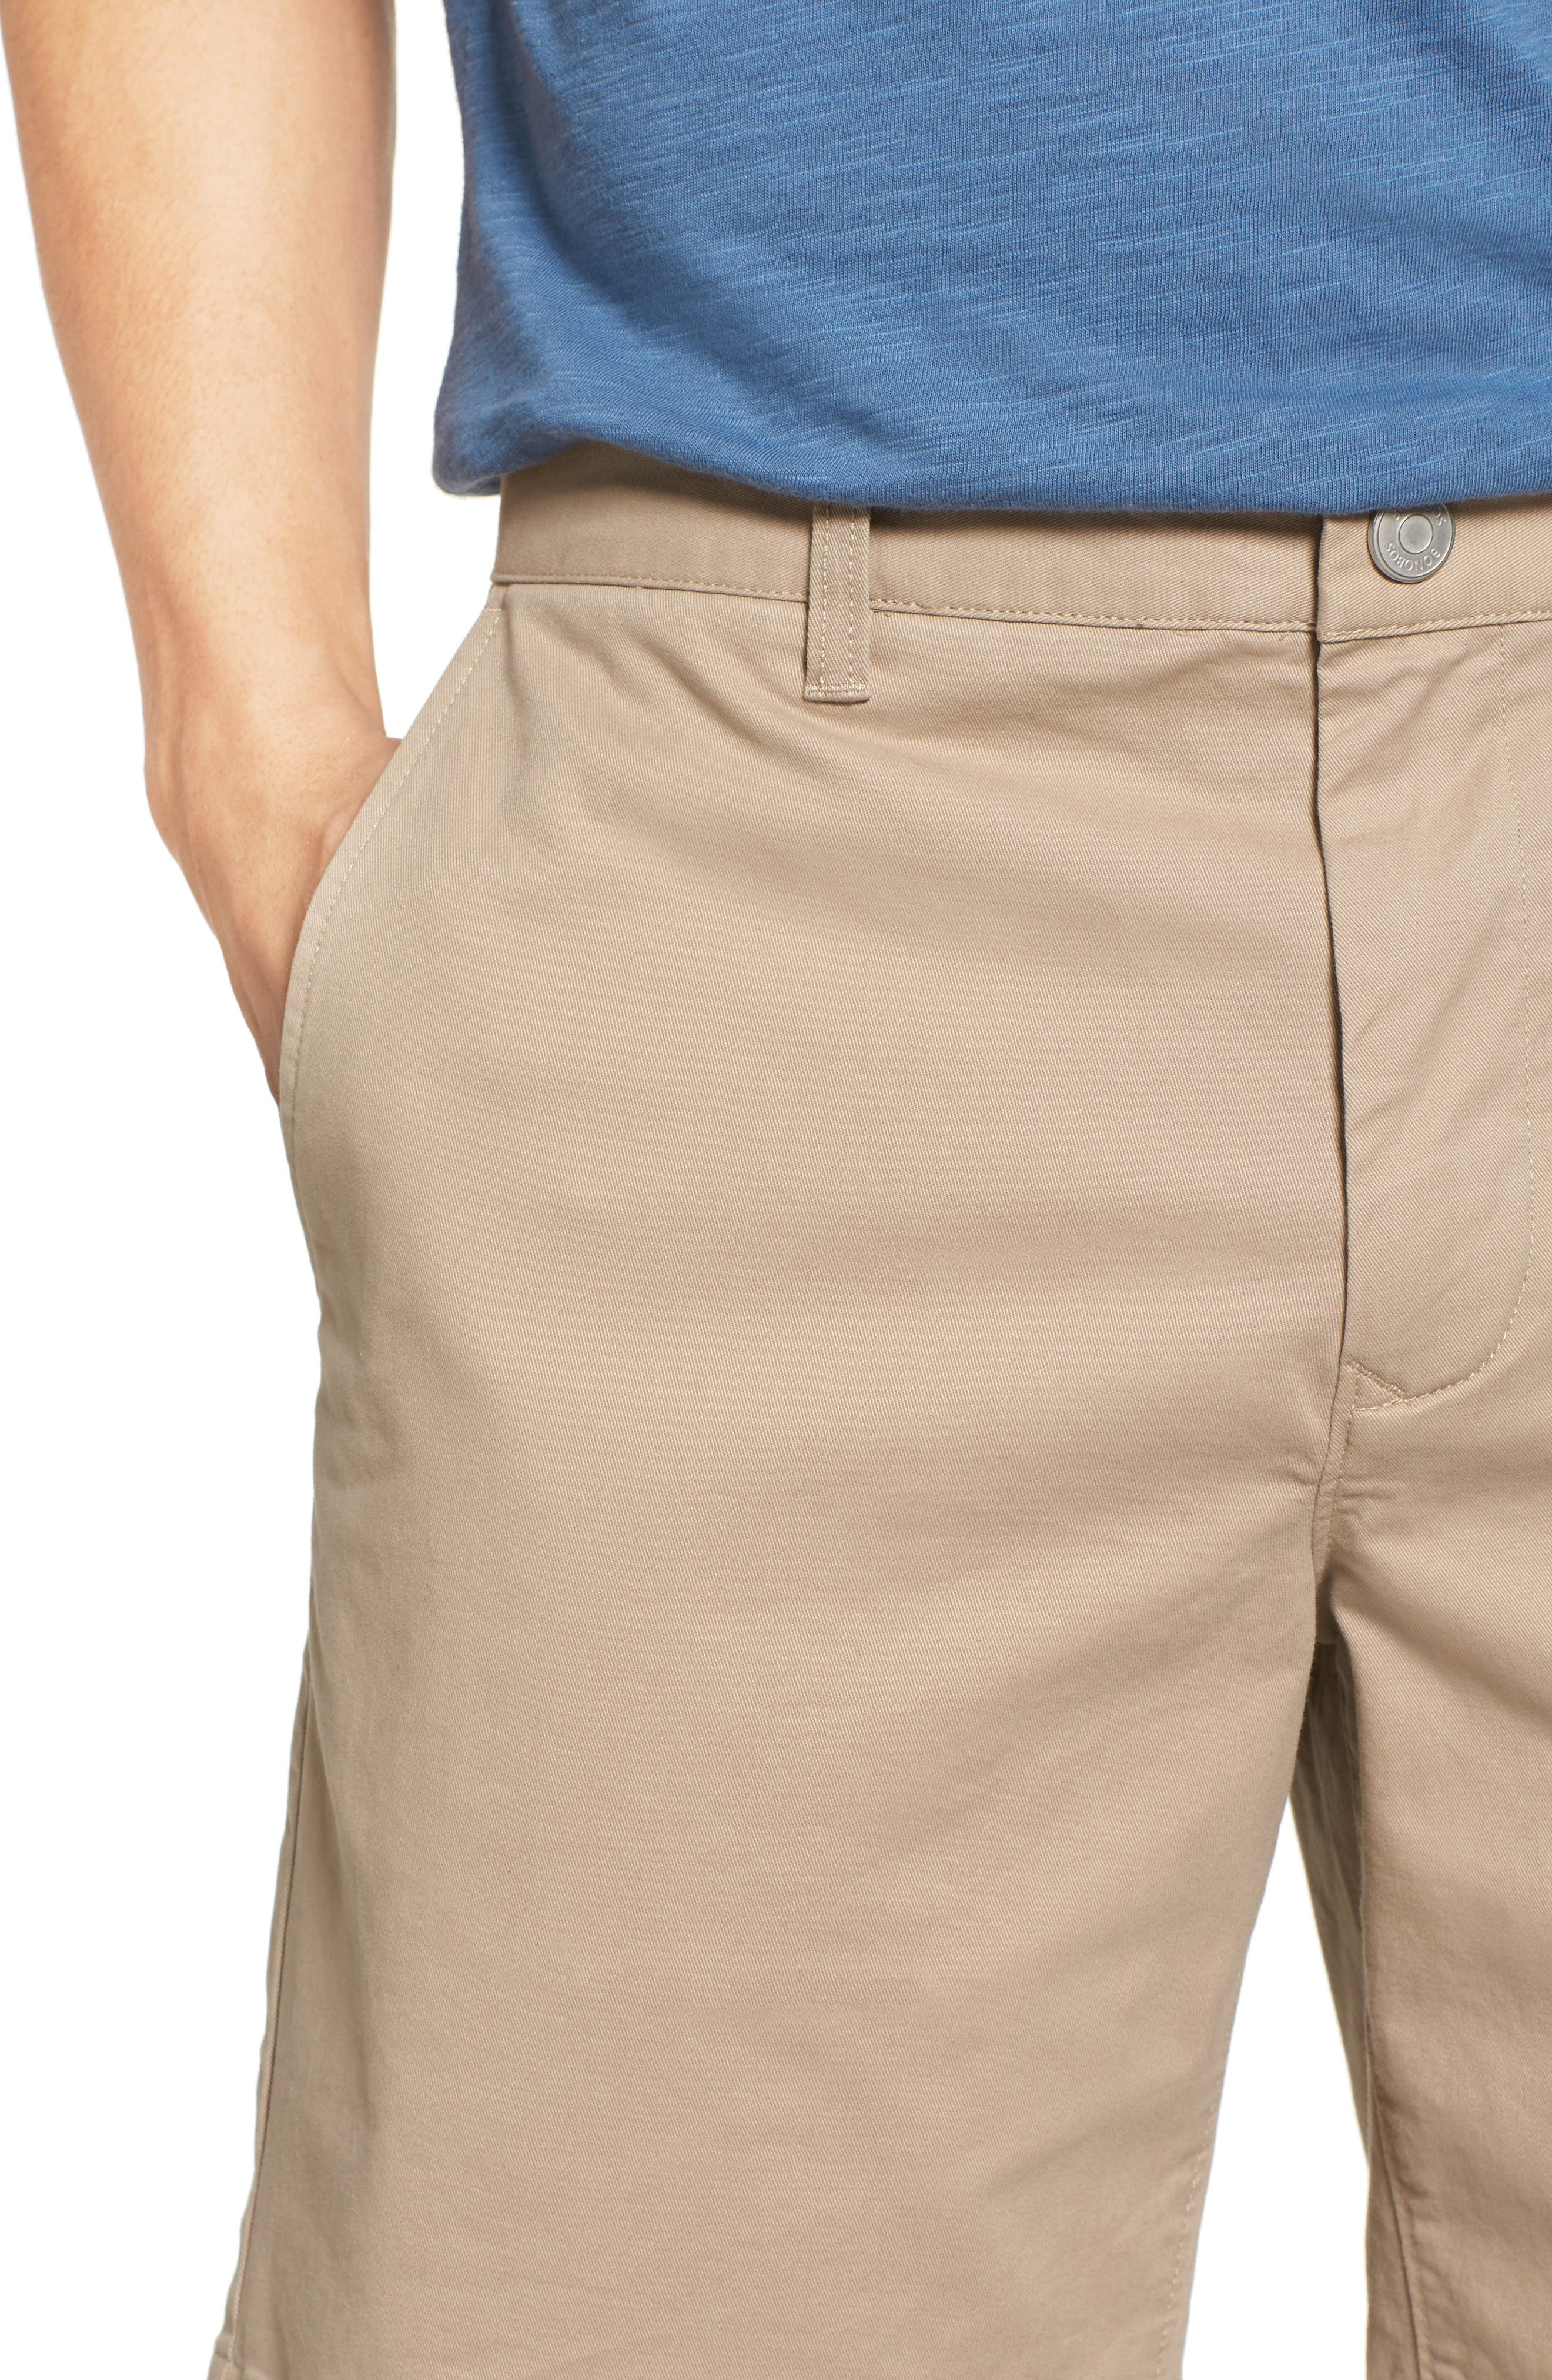 Stretch Washed Chino 7-Inch Shorts,                             Alternate thumbnail 4, color,                             True Khaki